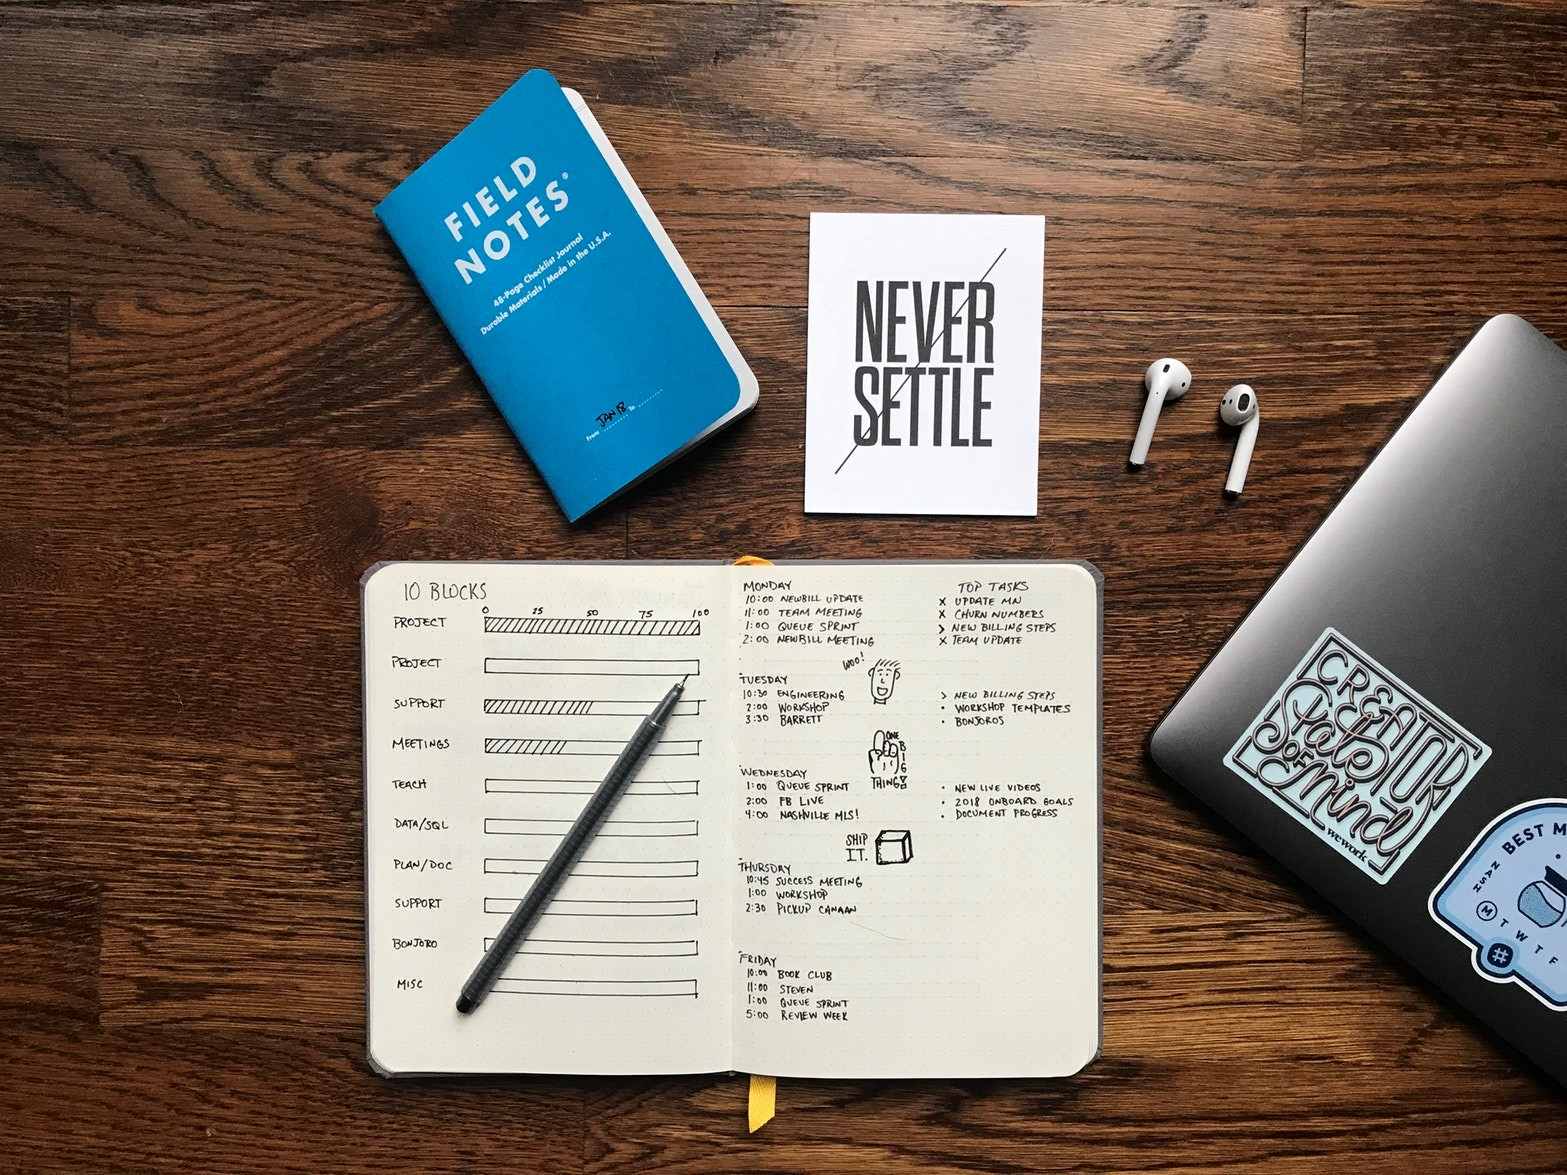 5 Top Tips To Ensure Success in the Freelance Life